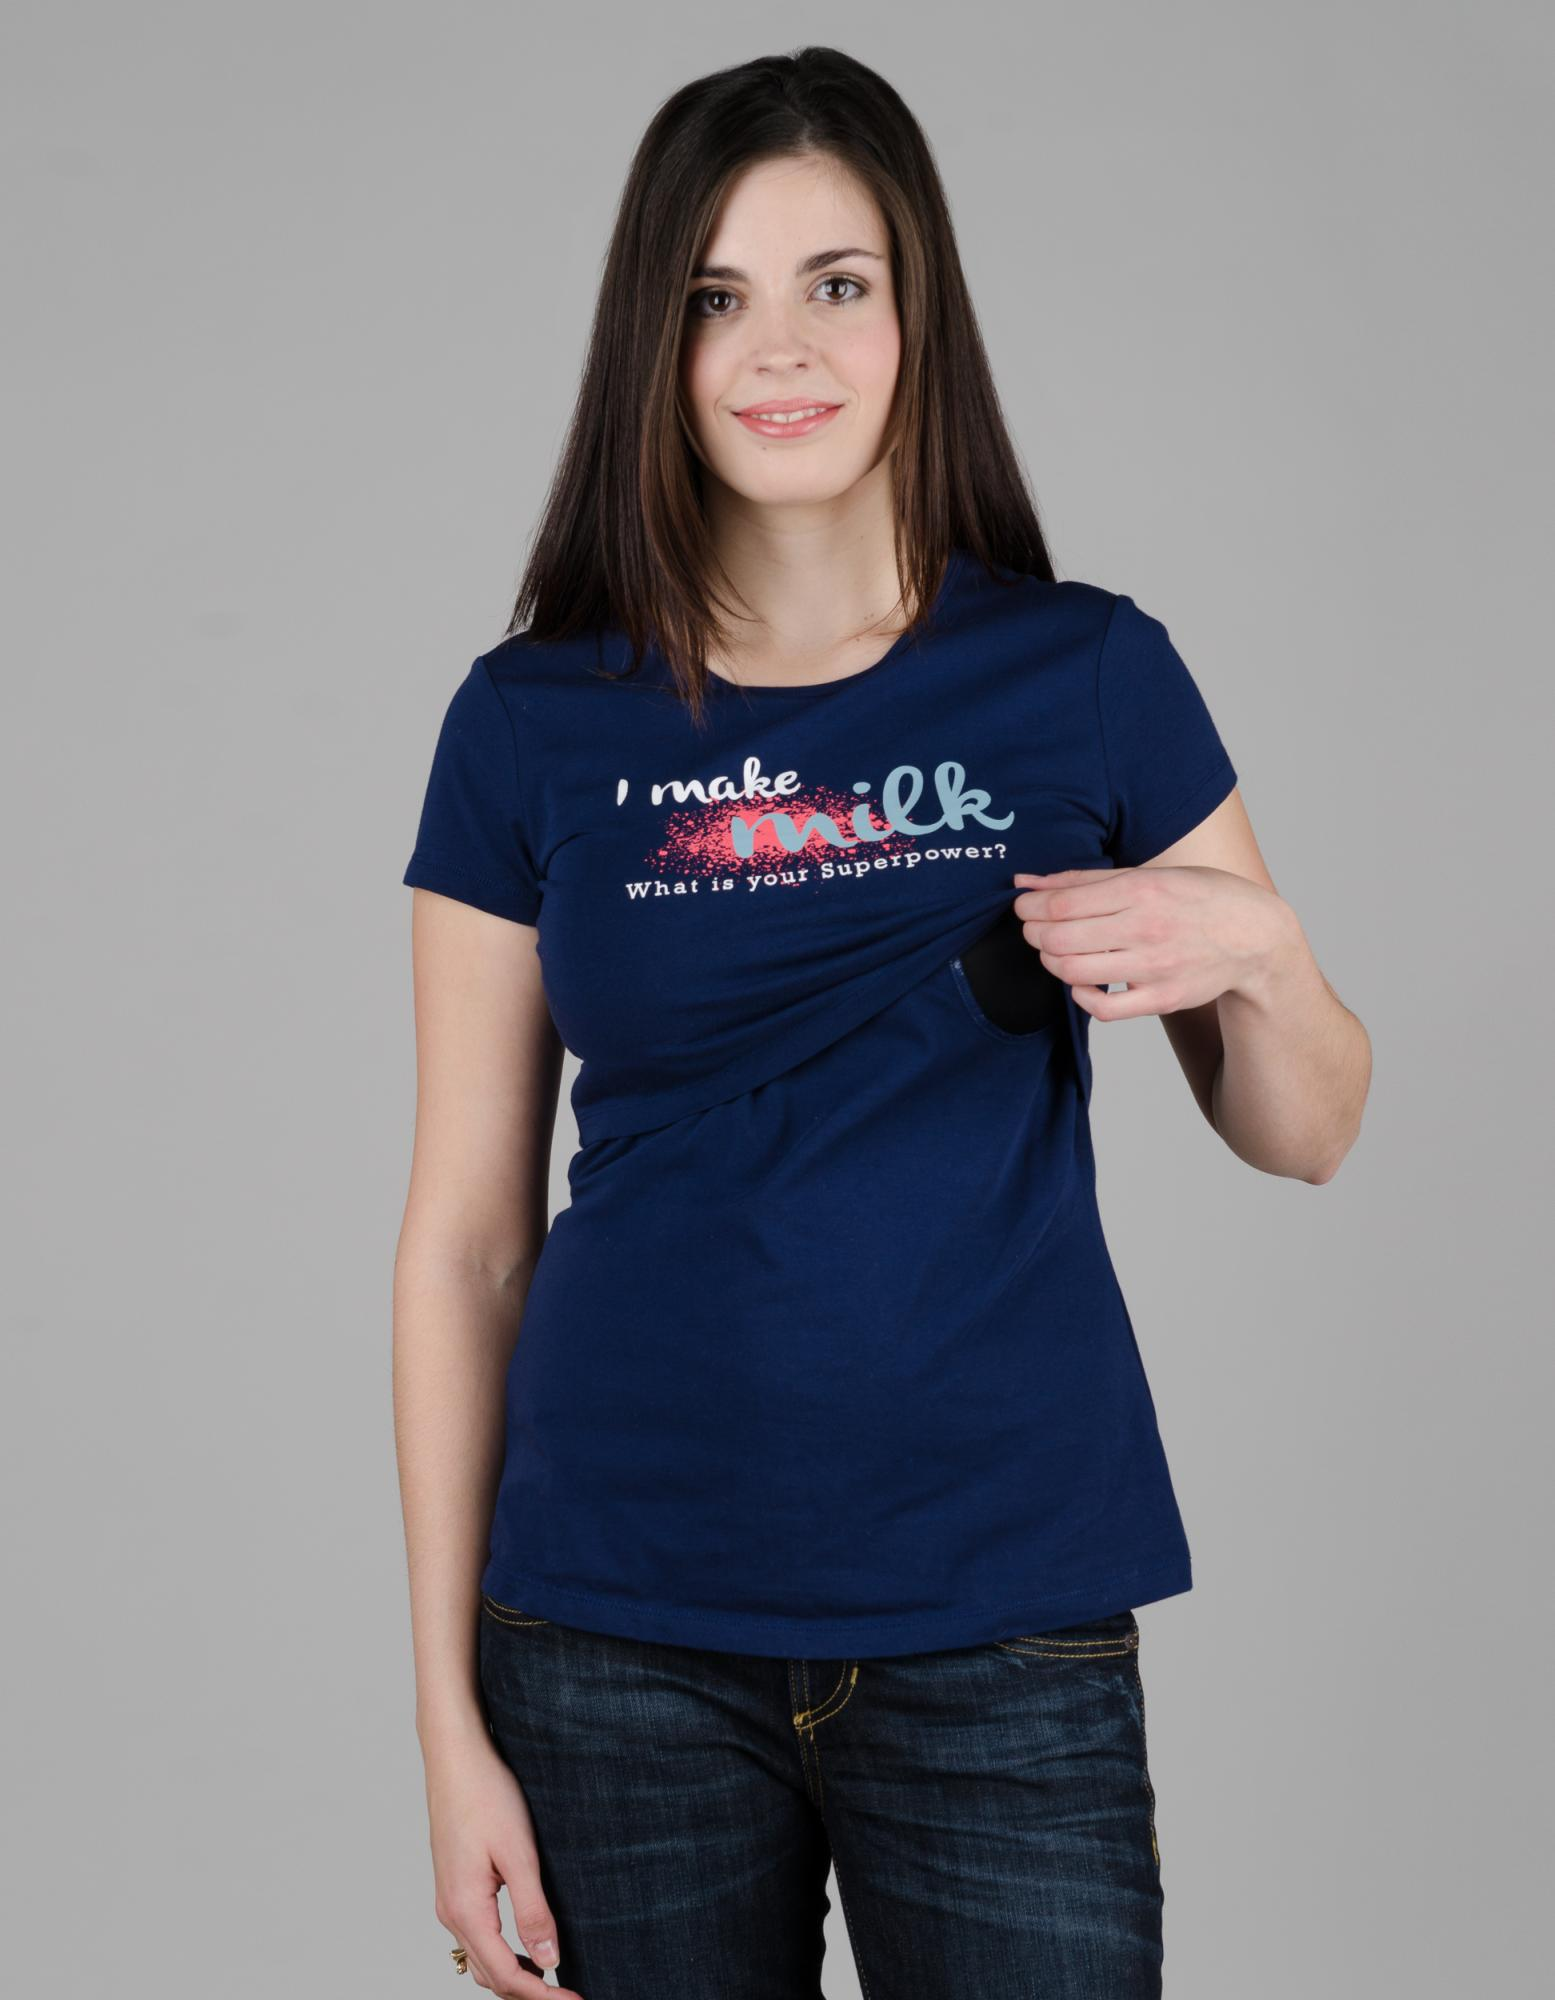 momzelle-super-power-nursing-tee-navy-opening.jpg